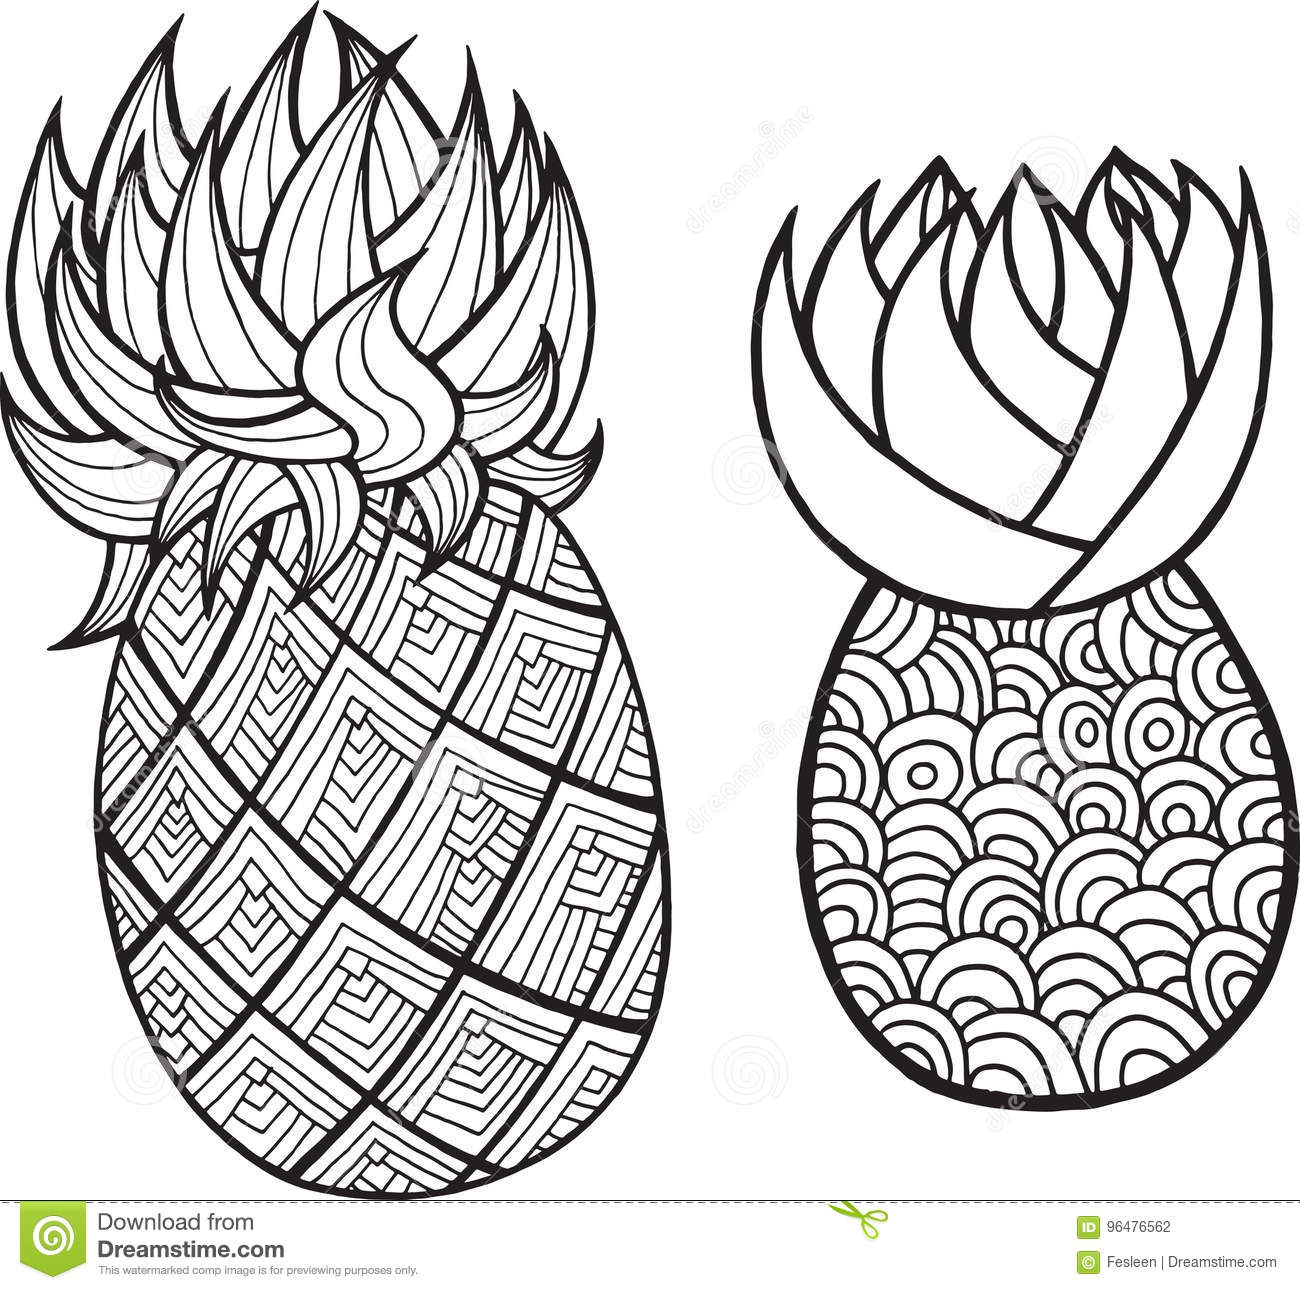 Pineapple and ananas coloring page graphic vector black and white art for coloring books for adults tropical and exotic fruit line illustration